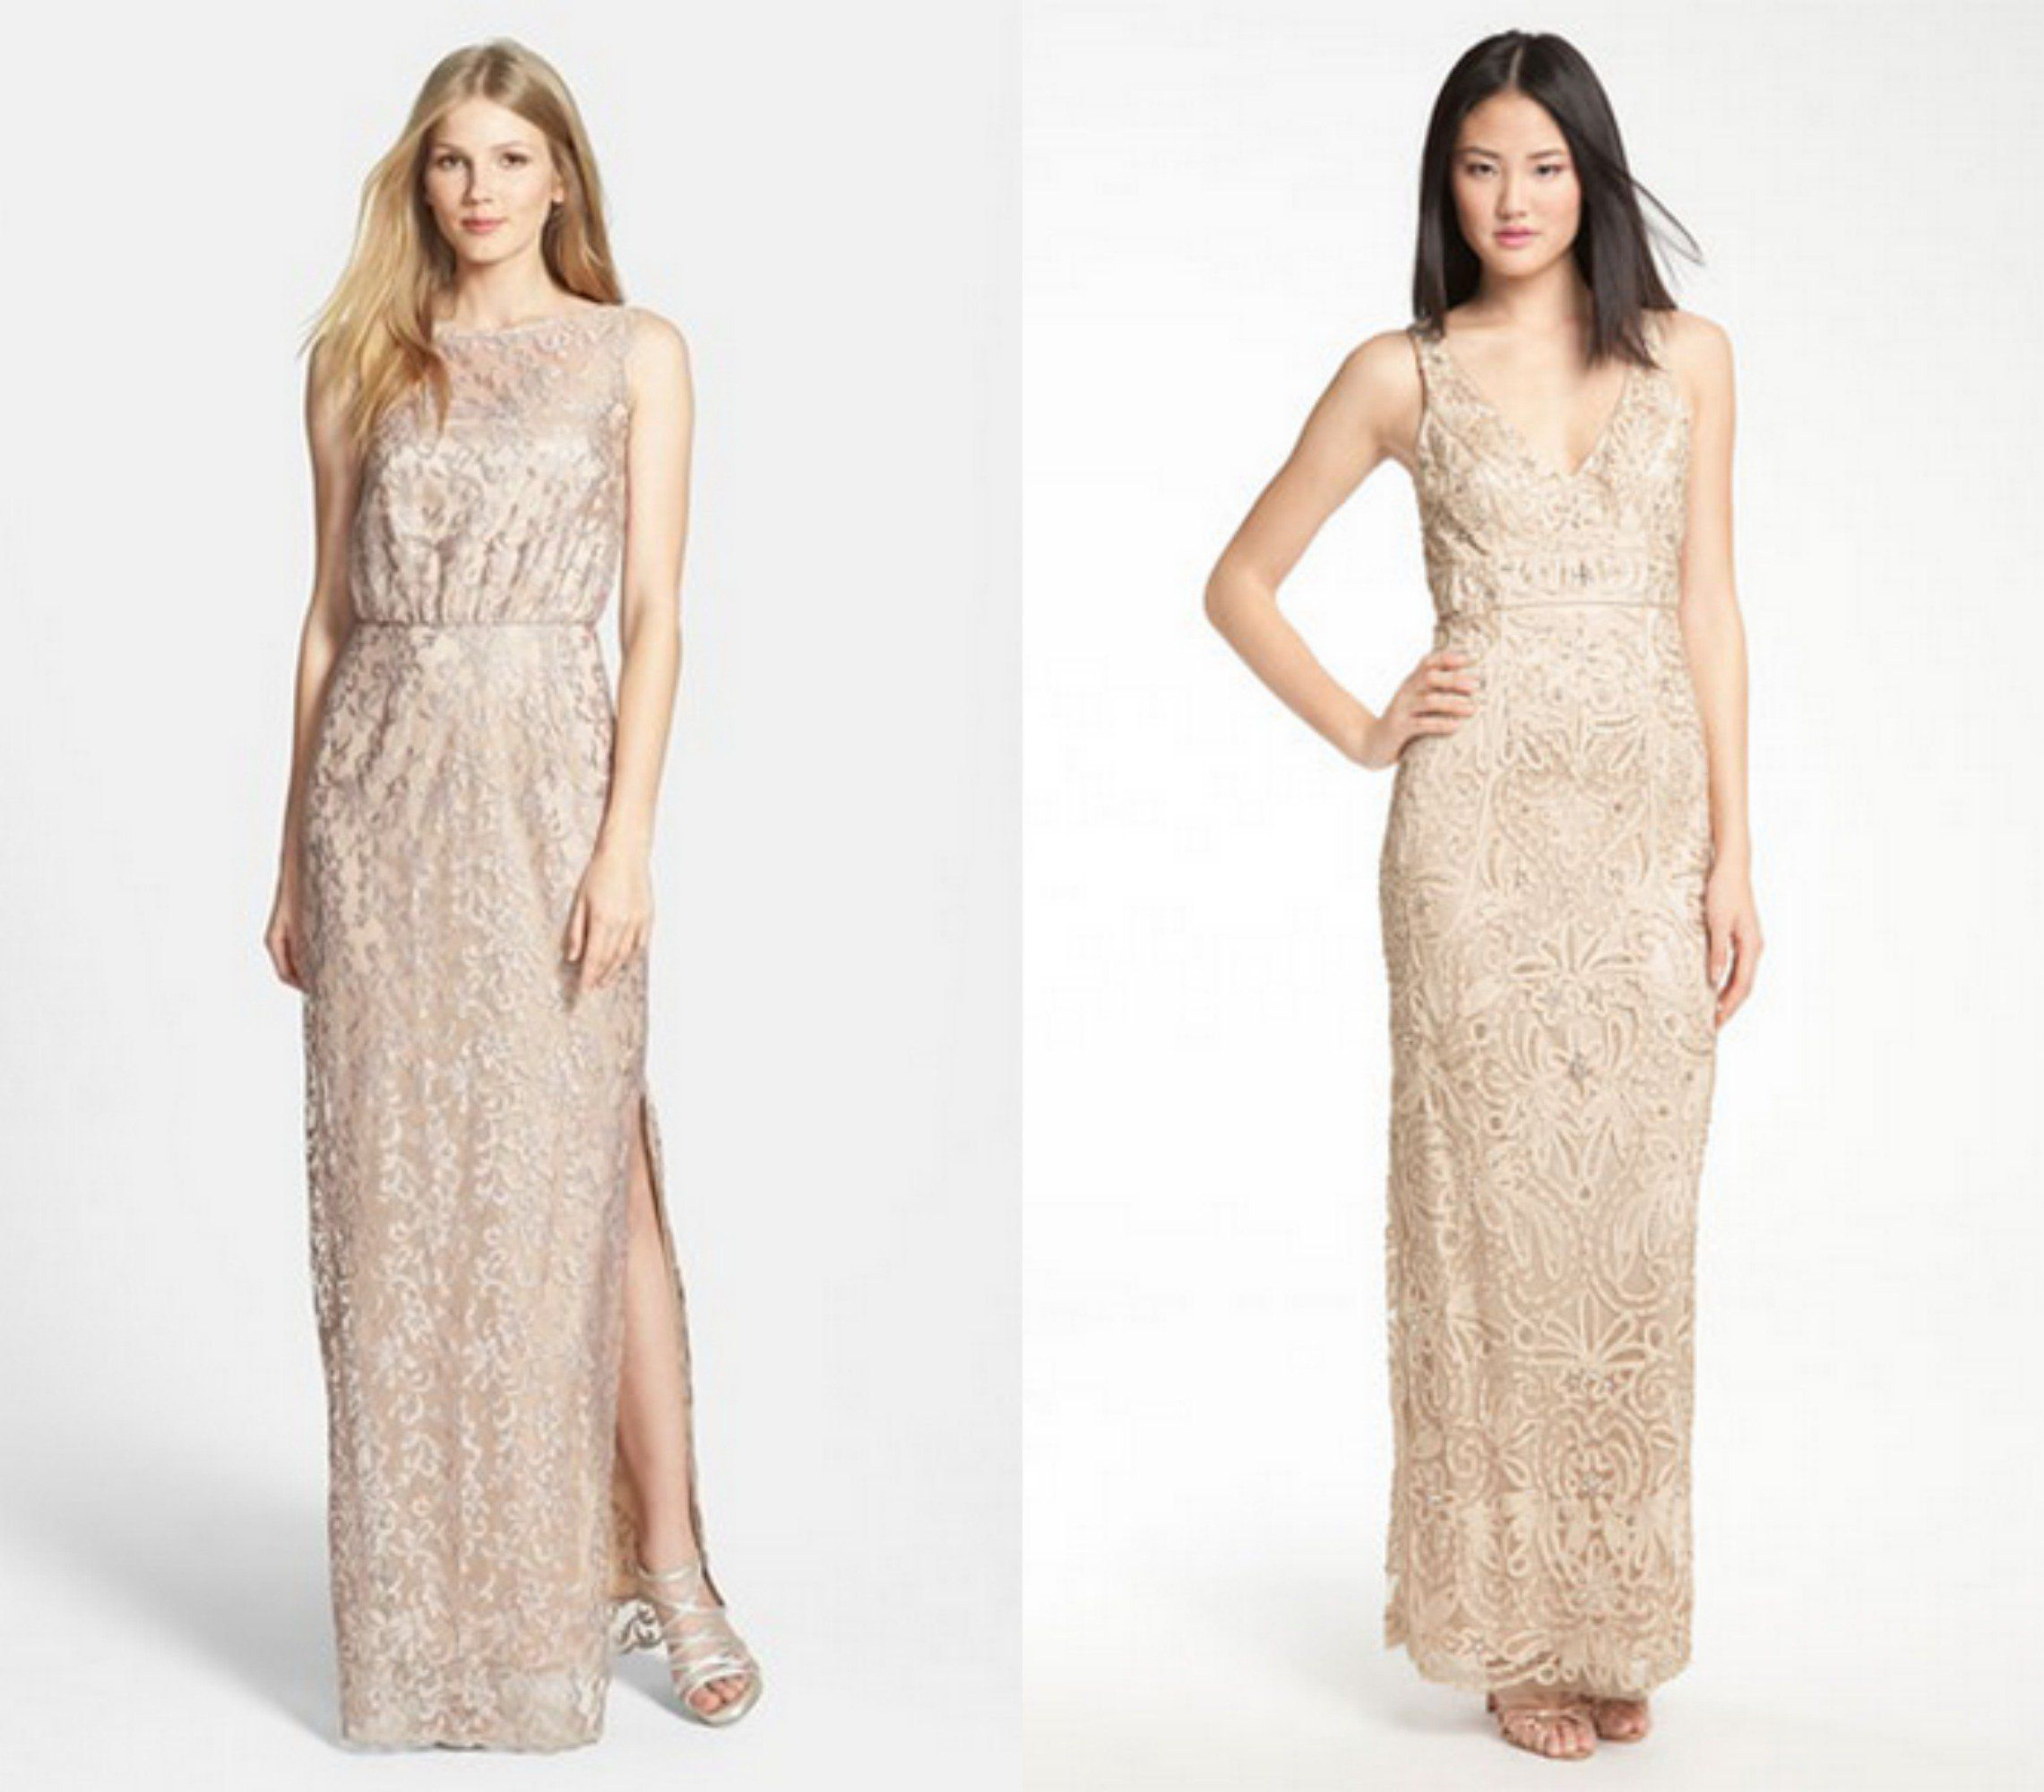 Champagne bridesmaid dresses champagne champagne bridesmaids champagne bridesmaid dresses ombrellifo Images